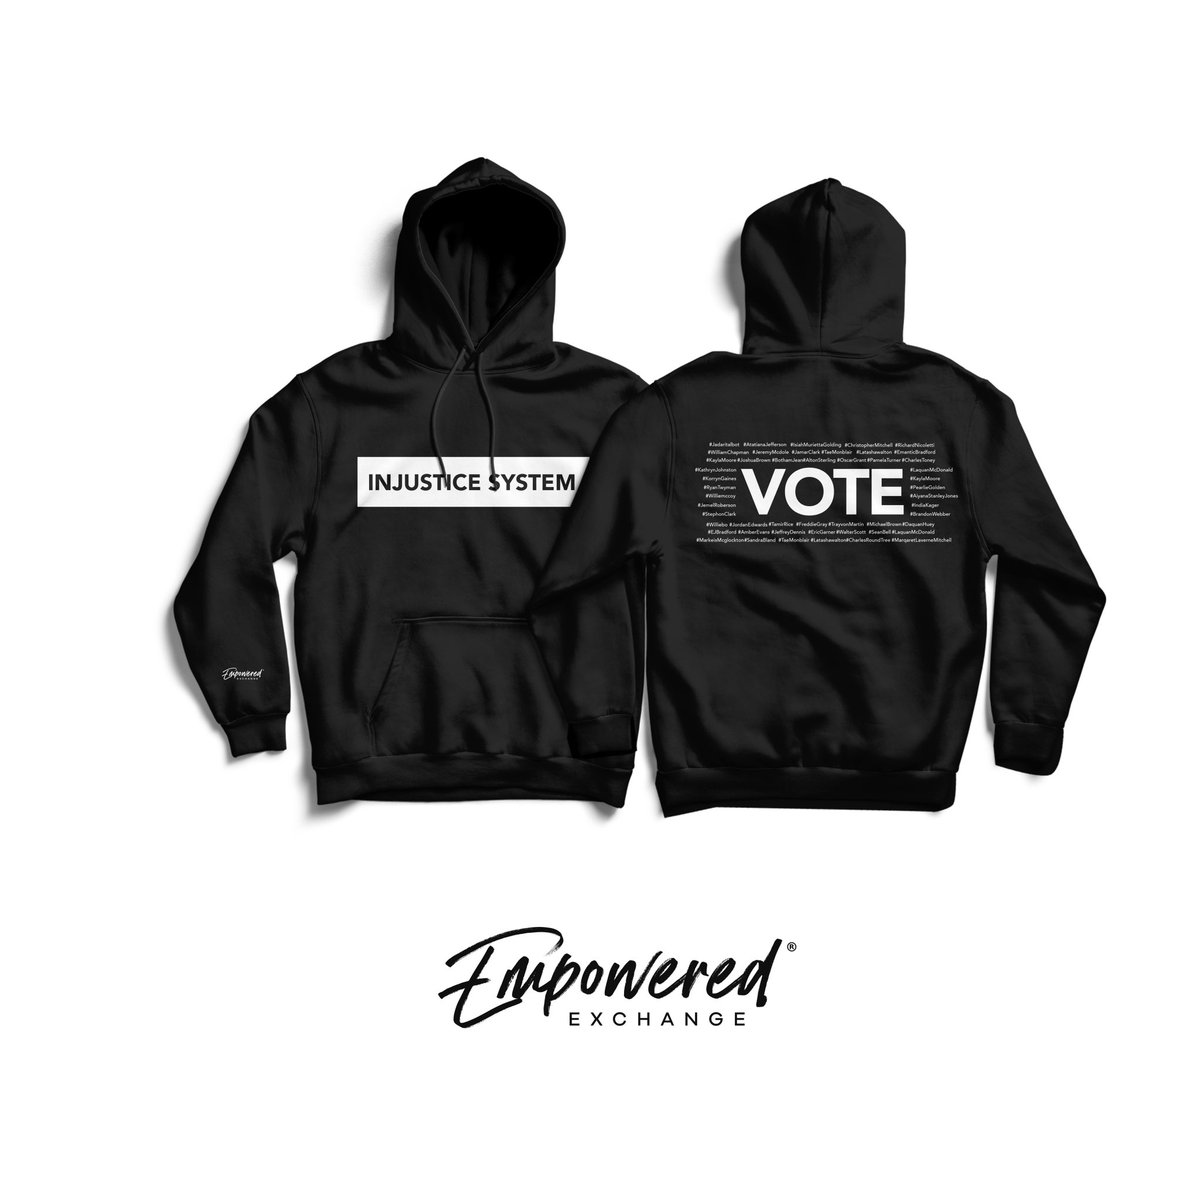 @DeGeraldWB & I Created Pieces to Bring Awareness & Make a Change. The Following Names Were Killed By Police, Mysteriously Killed While Being Protected by Police or Was in Police Custody. Link In Bio To Purchase Gear & Join The Movement #ItsOnUs #SayTheirNames #BeEmpowered